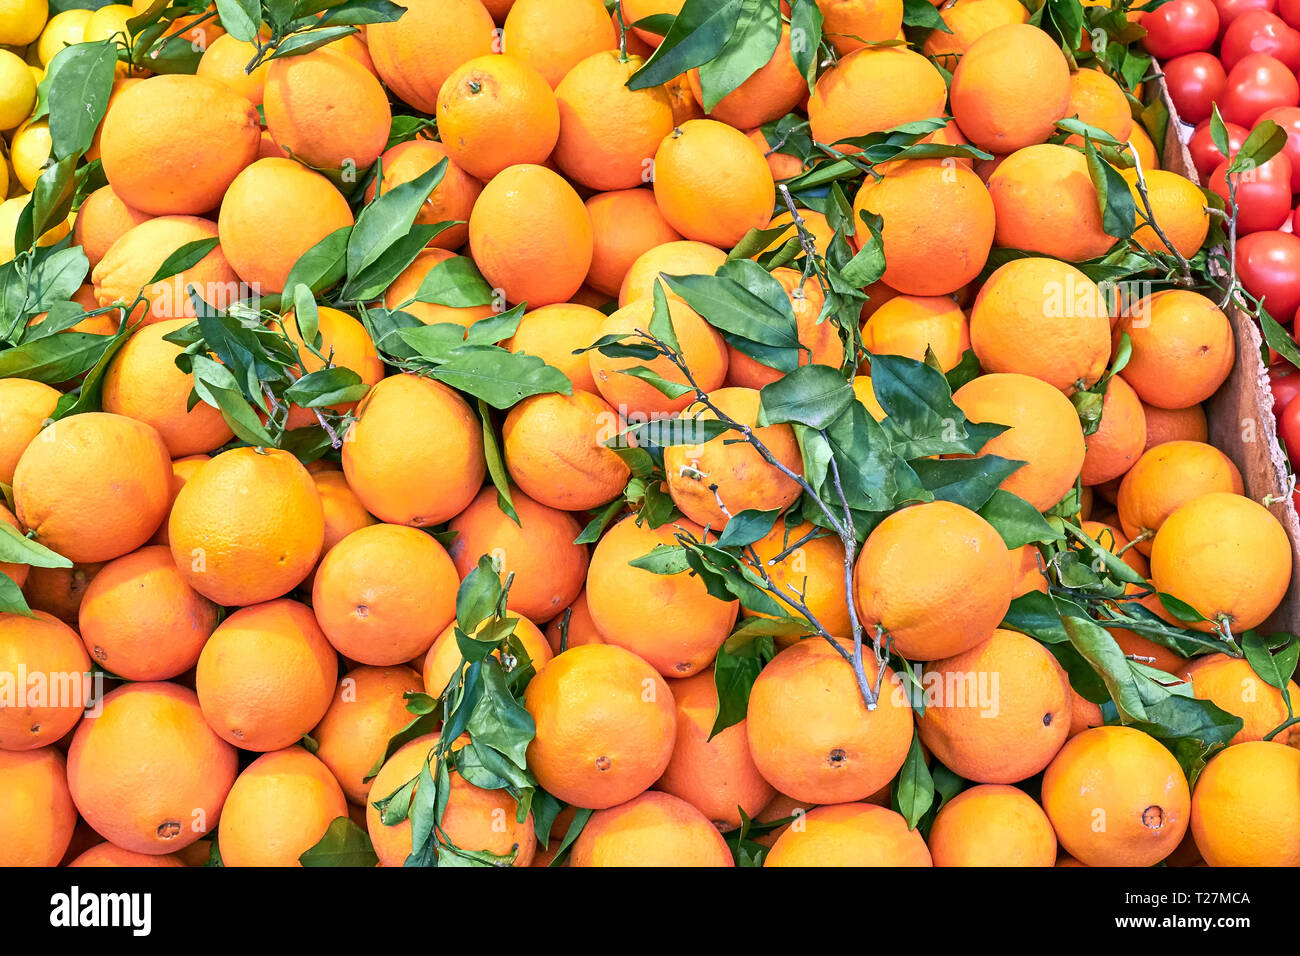 Fresh ripe oranges with green leaves for sale at market - Stock Image